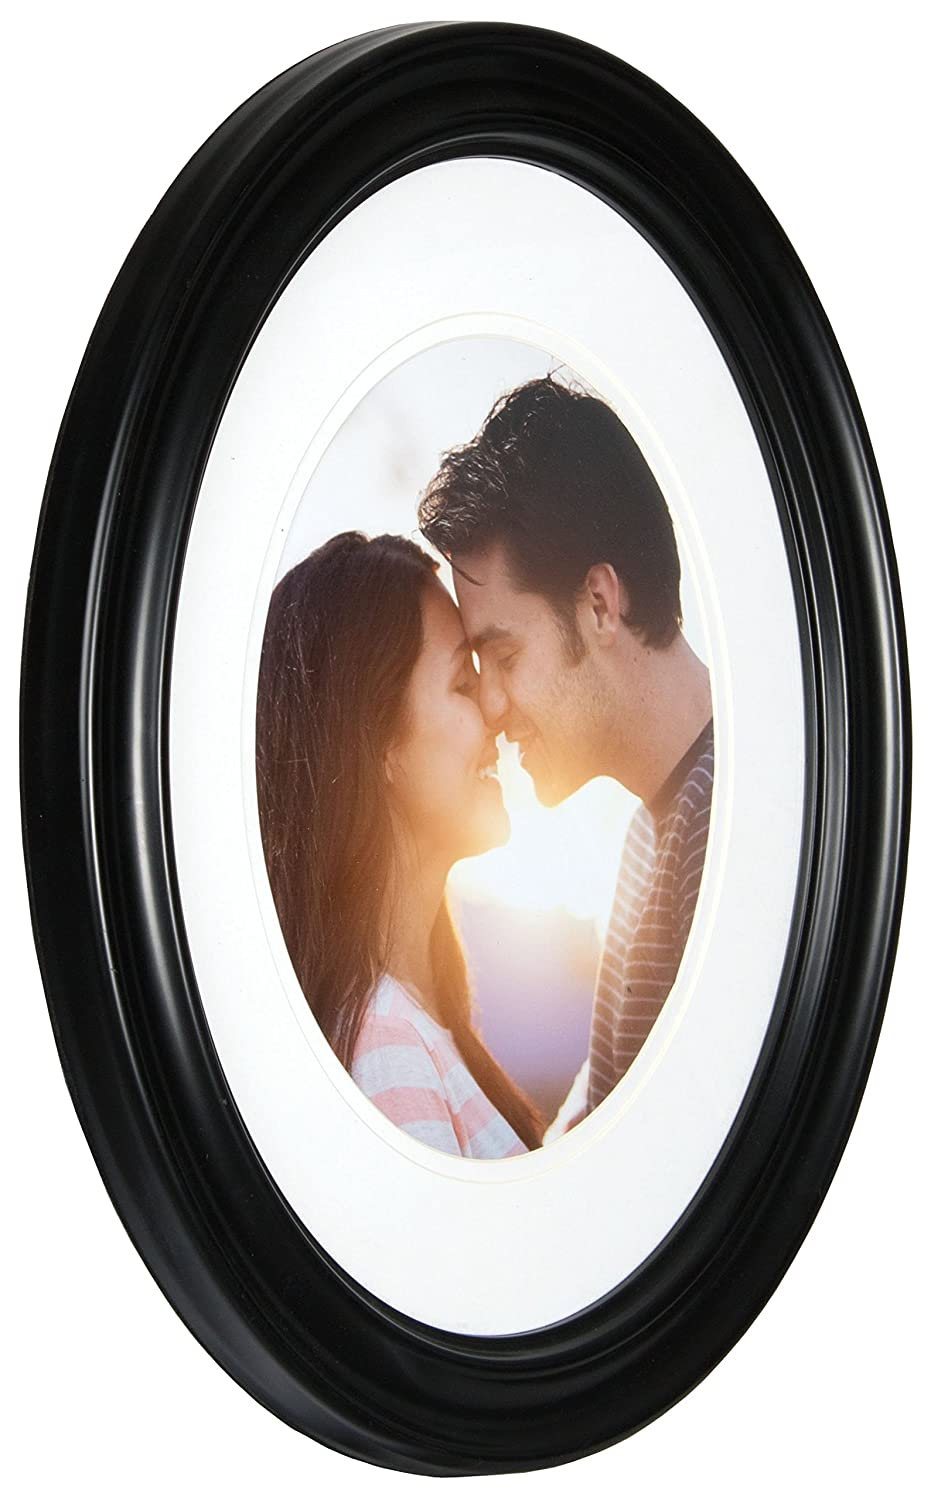 Amazon gallery solutions 11x14 black oval wall frame matted amazon gallery solutions 11x14 black oval wall frame matted to display 8x10 image jeuxipadfo Gallery